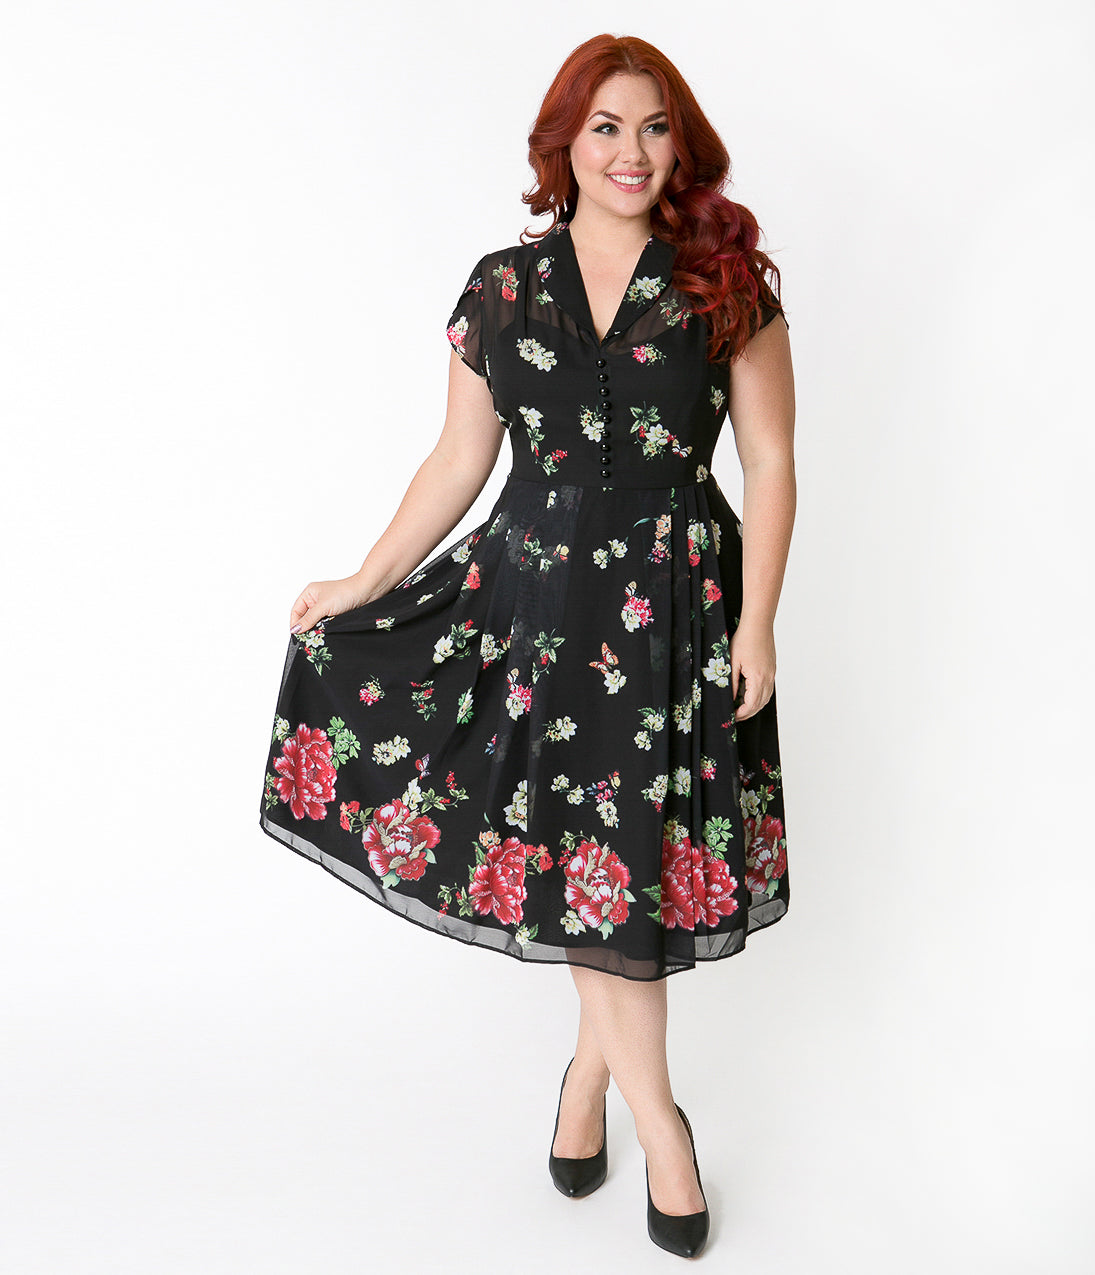 1950s Swing Dresses | 50s Swing Dress Hell Bunny Plus Size Black Floral  Butterfly Jolie Papillon Chiffon Swing Dress $92.00 AT vintagedancer.com